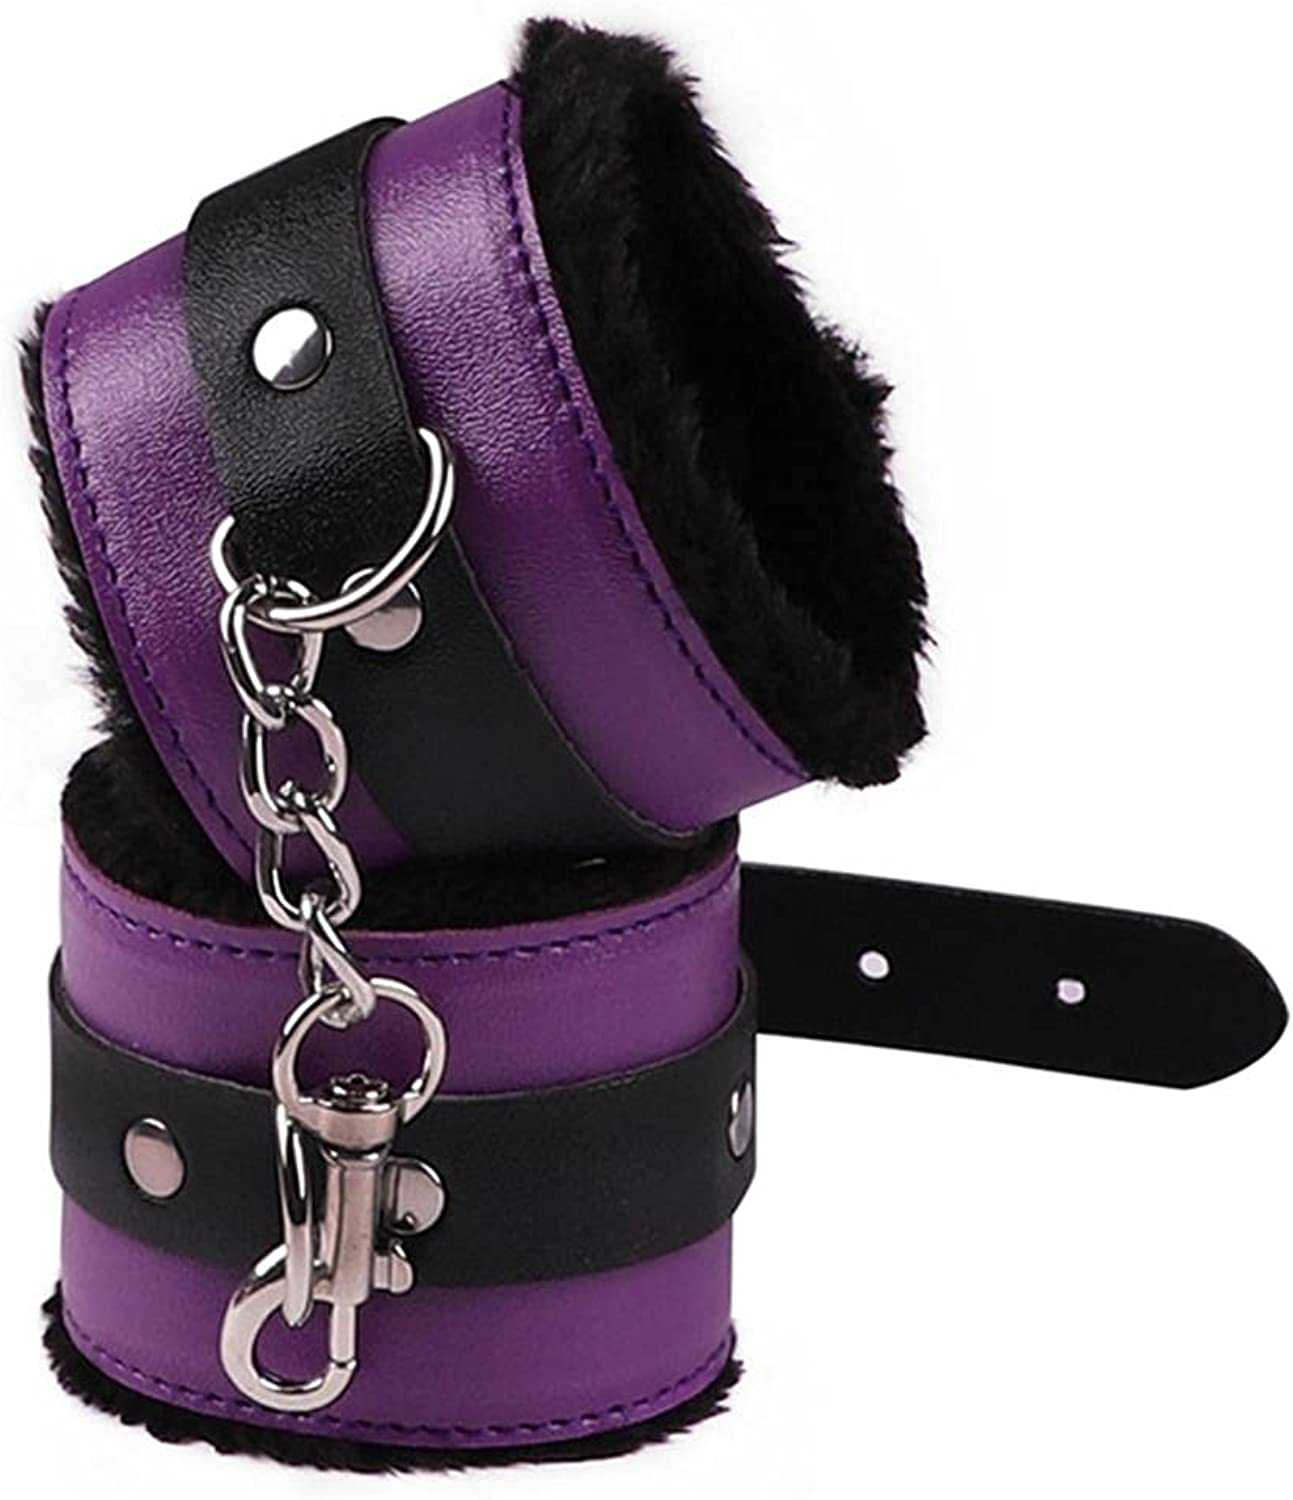 Fluffy Wrist Leather Handcuffs Bracelet Leg Cuffs Anklet Bangle Role Play Exercise Bands Leash Sex Detachable Adjustable Chain for Home Yoga Gyms Party Cosplay Jewelry